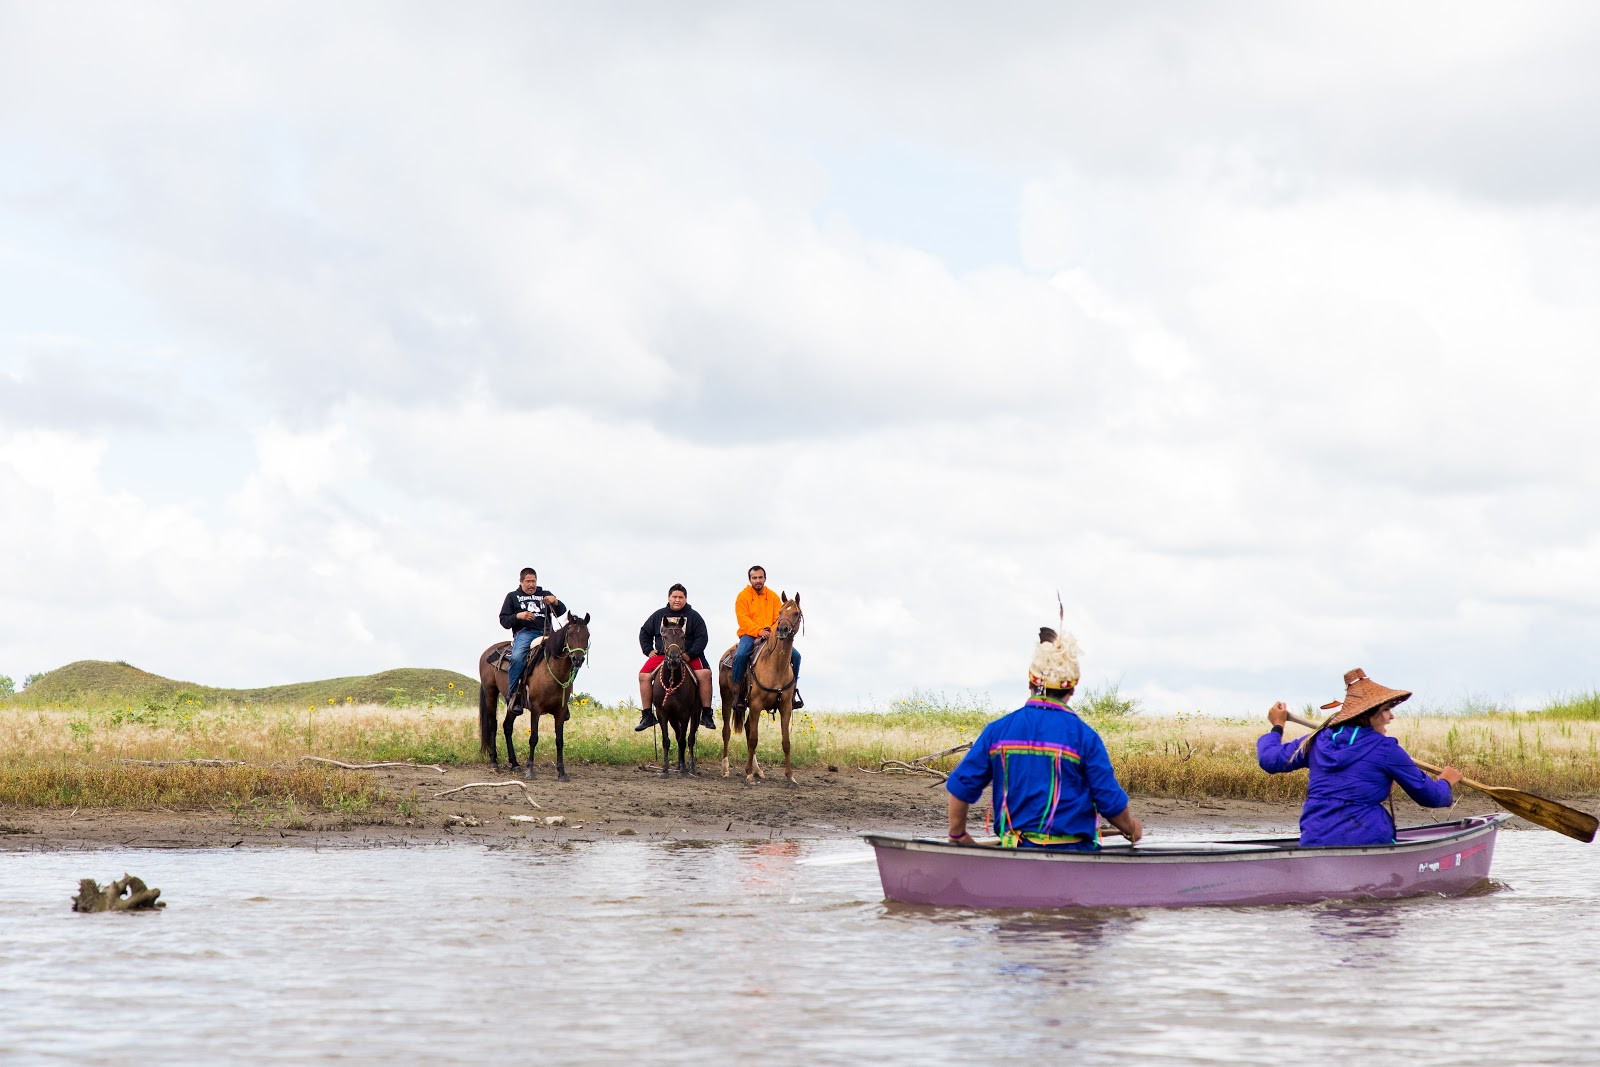 Horses lined the shore as canoers paddled out to express opposition to the Dakota Access Pipeline. (Photo: Alex Hamer)